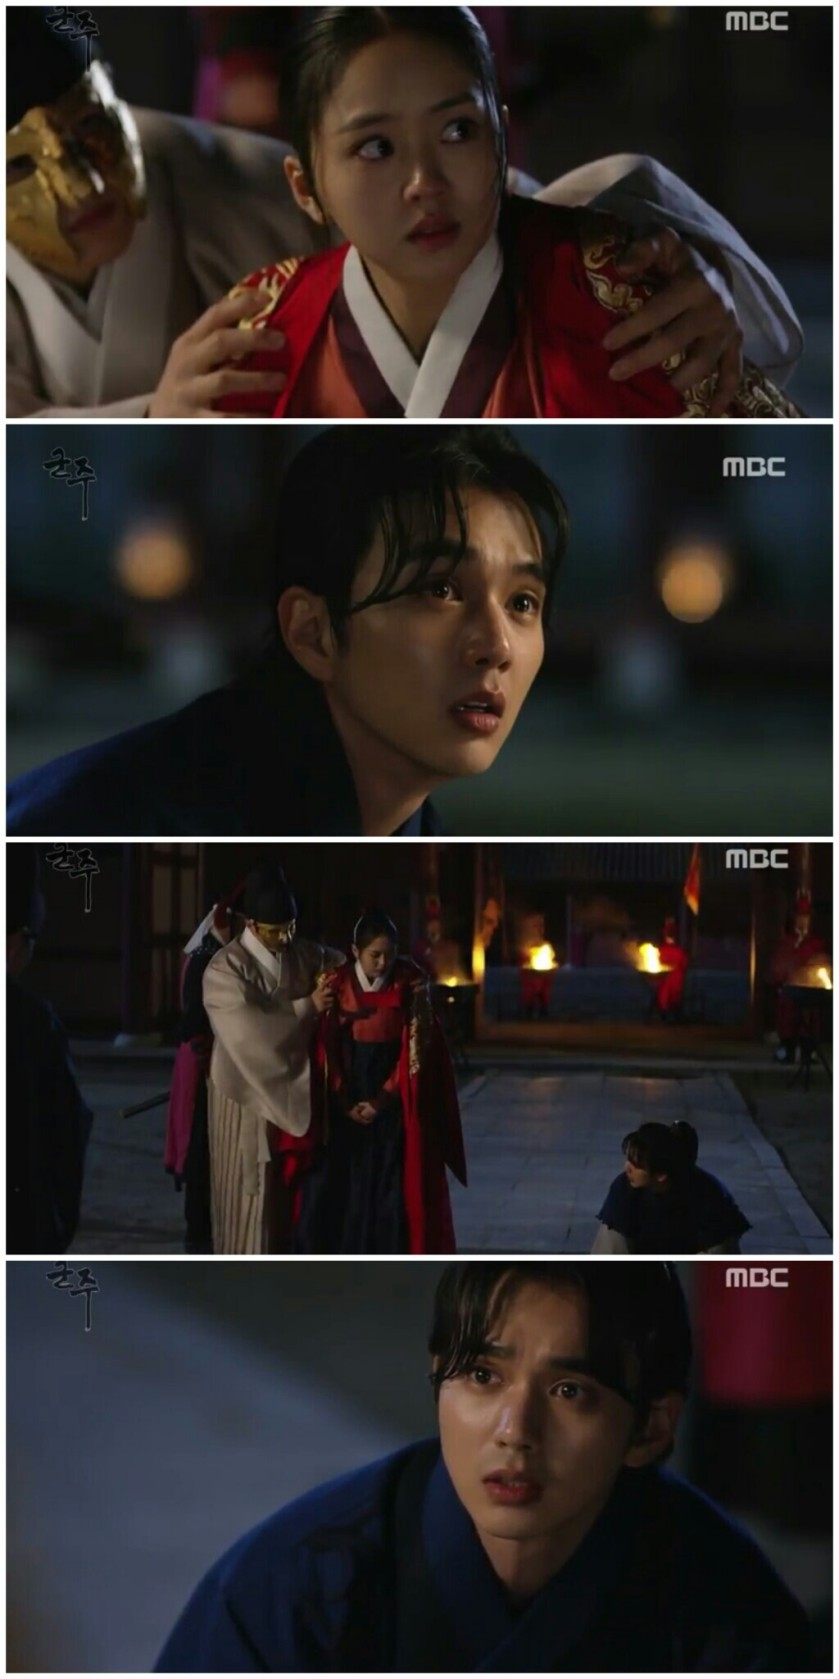 Ruler Master of the Mask ep 21 22 gaeun lee sun 2